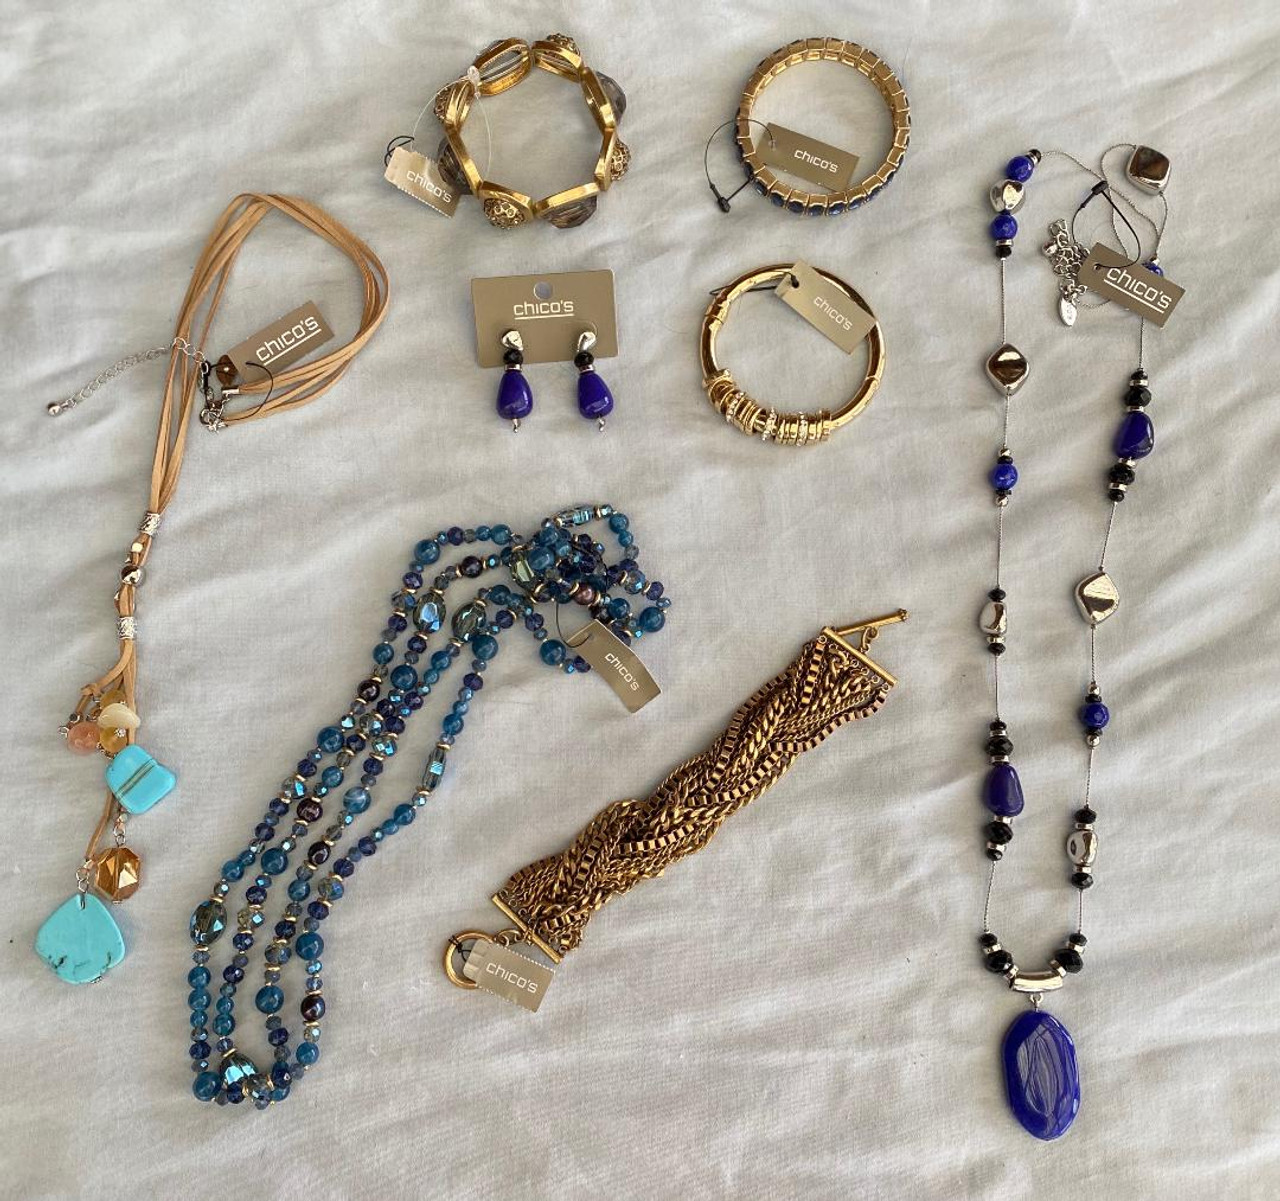 50 pieces High End Designer Name Brand Jewelry Chico/'s QVC ect